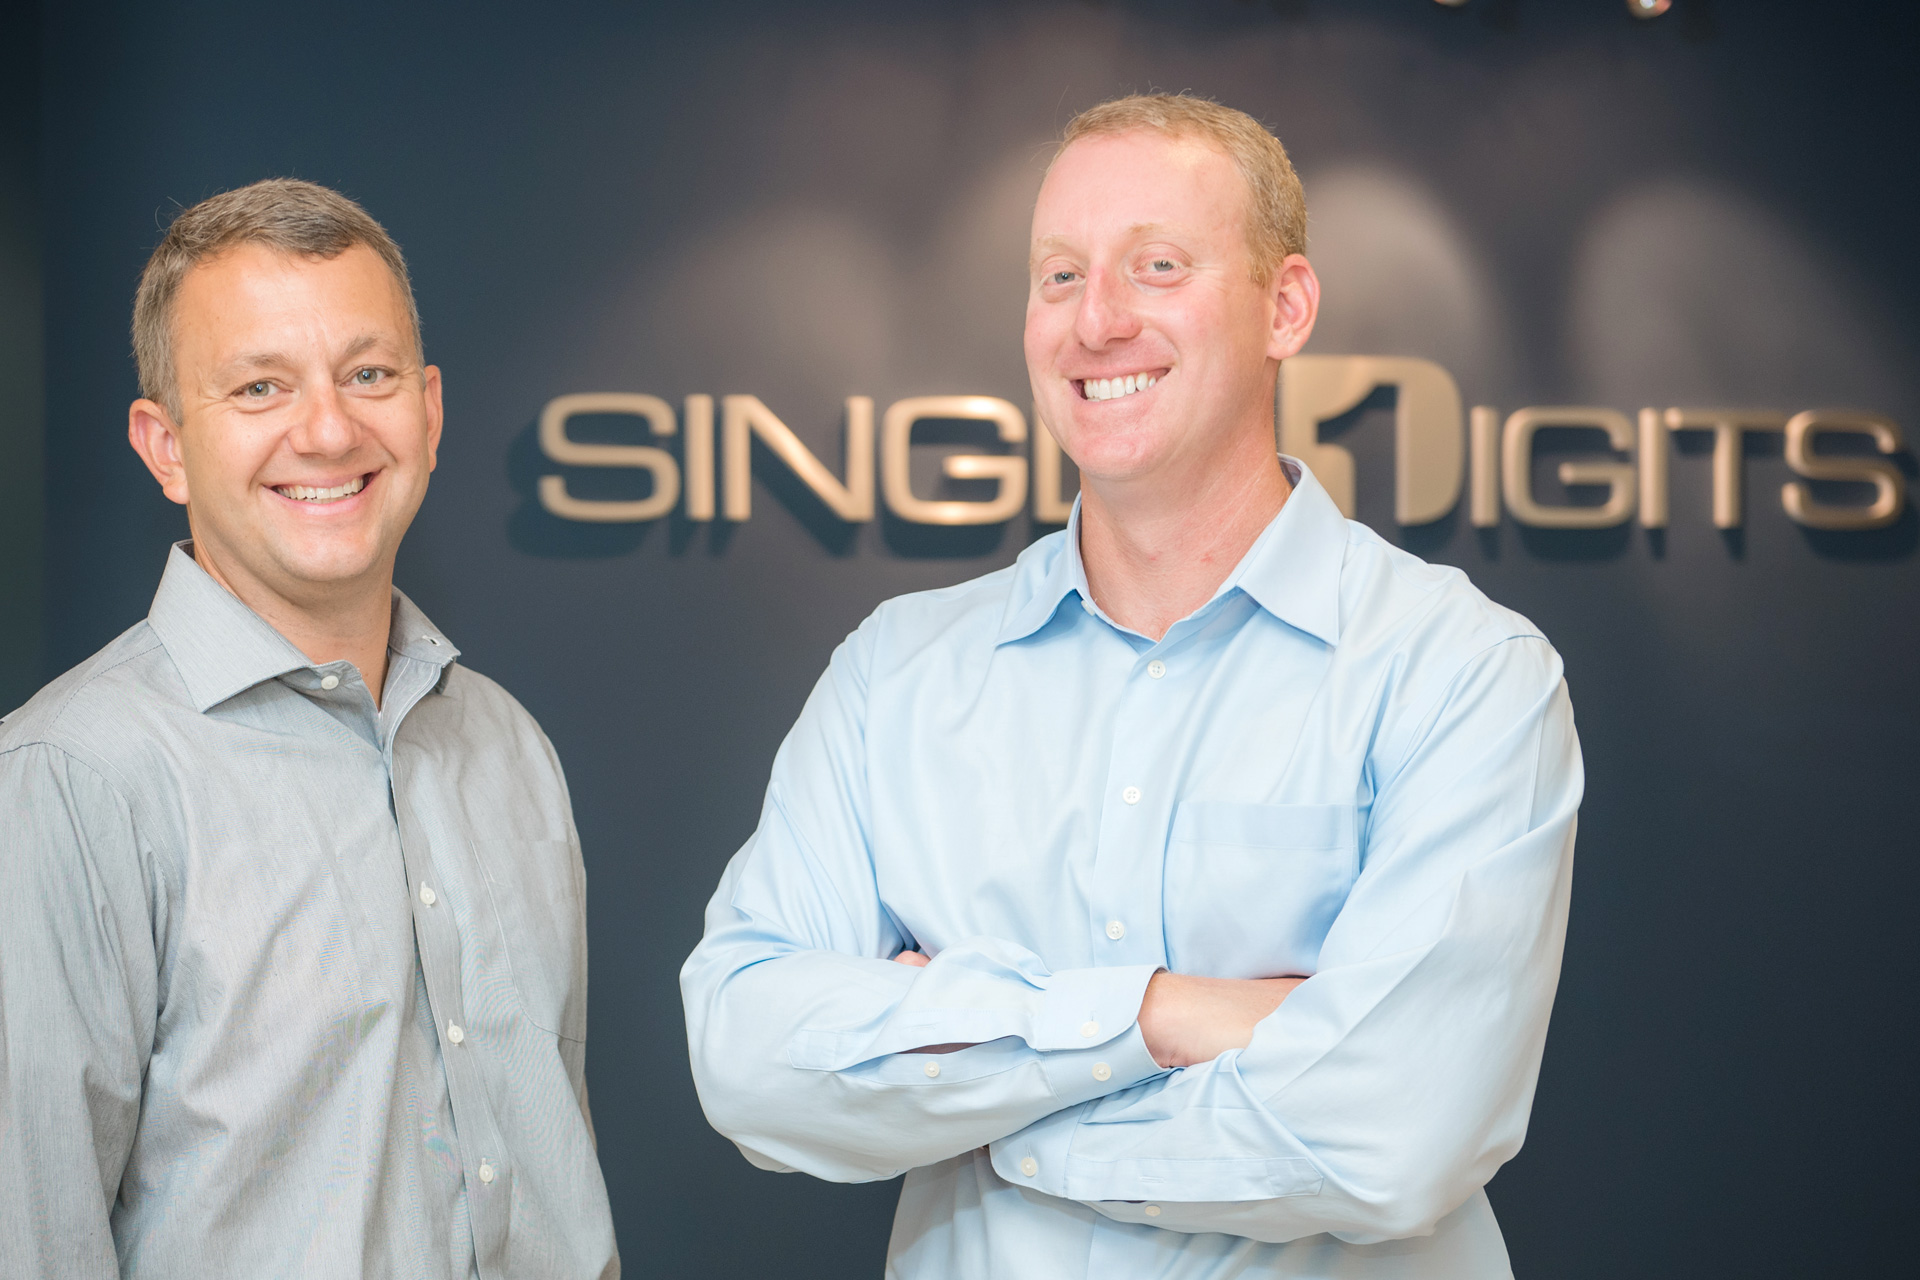 Two men stand in front of the Single Digits logomounted on the wall